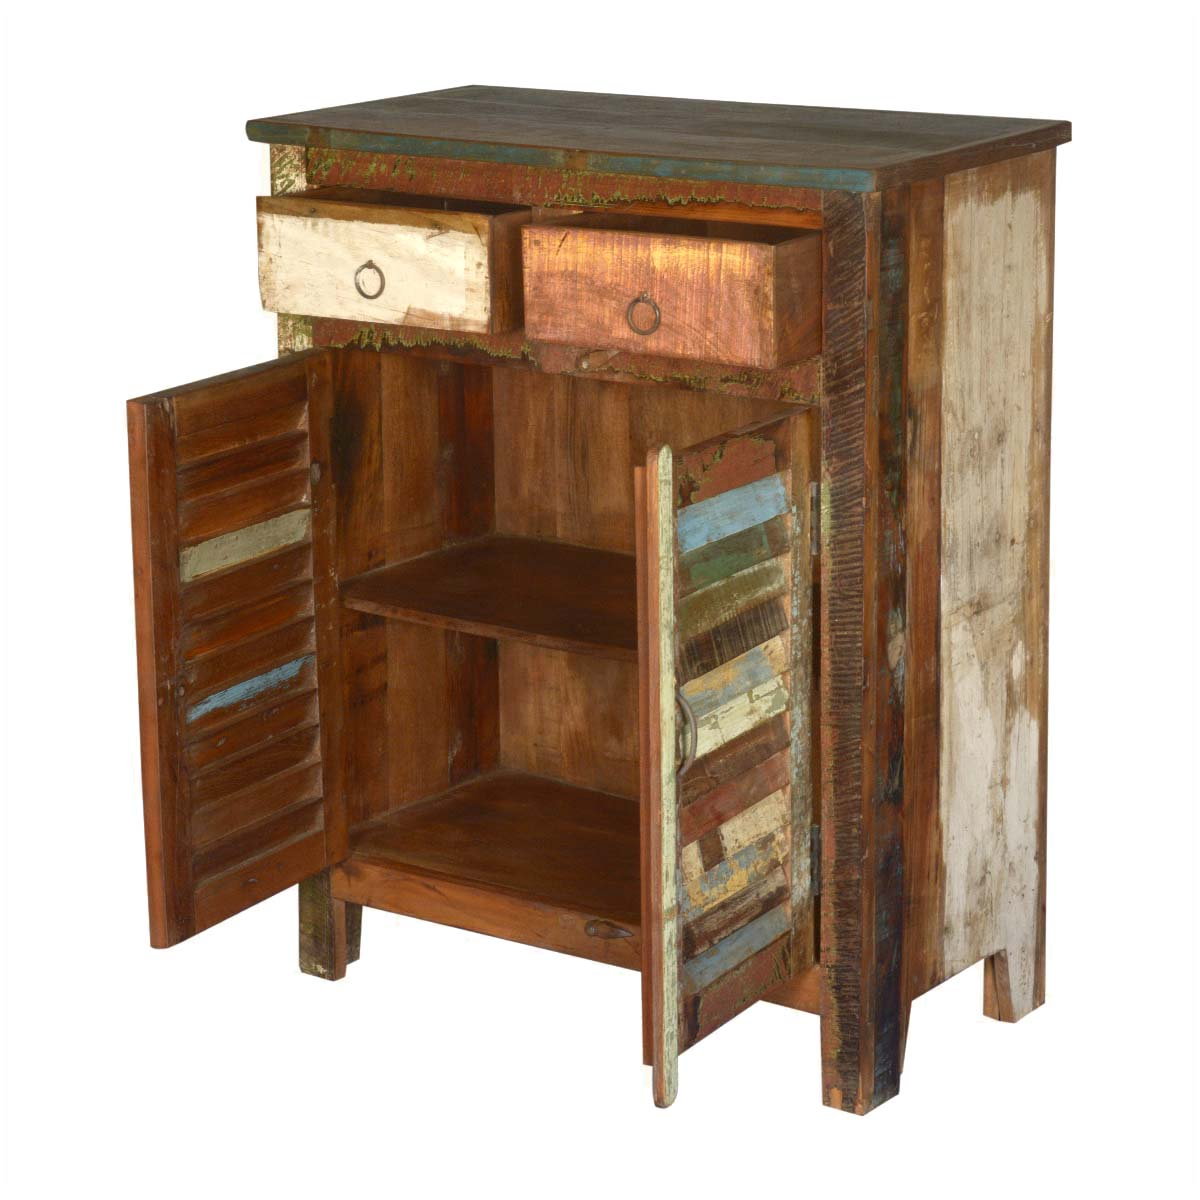 Multicolored Reclaimed Wood Storage Cabinet with 2 Drawers